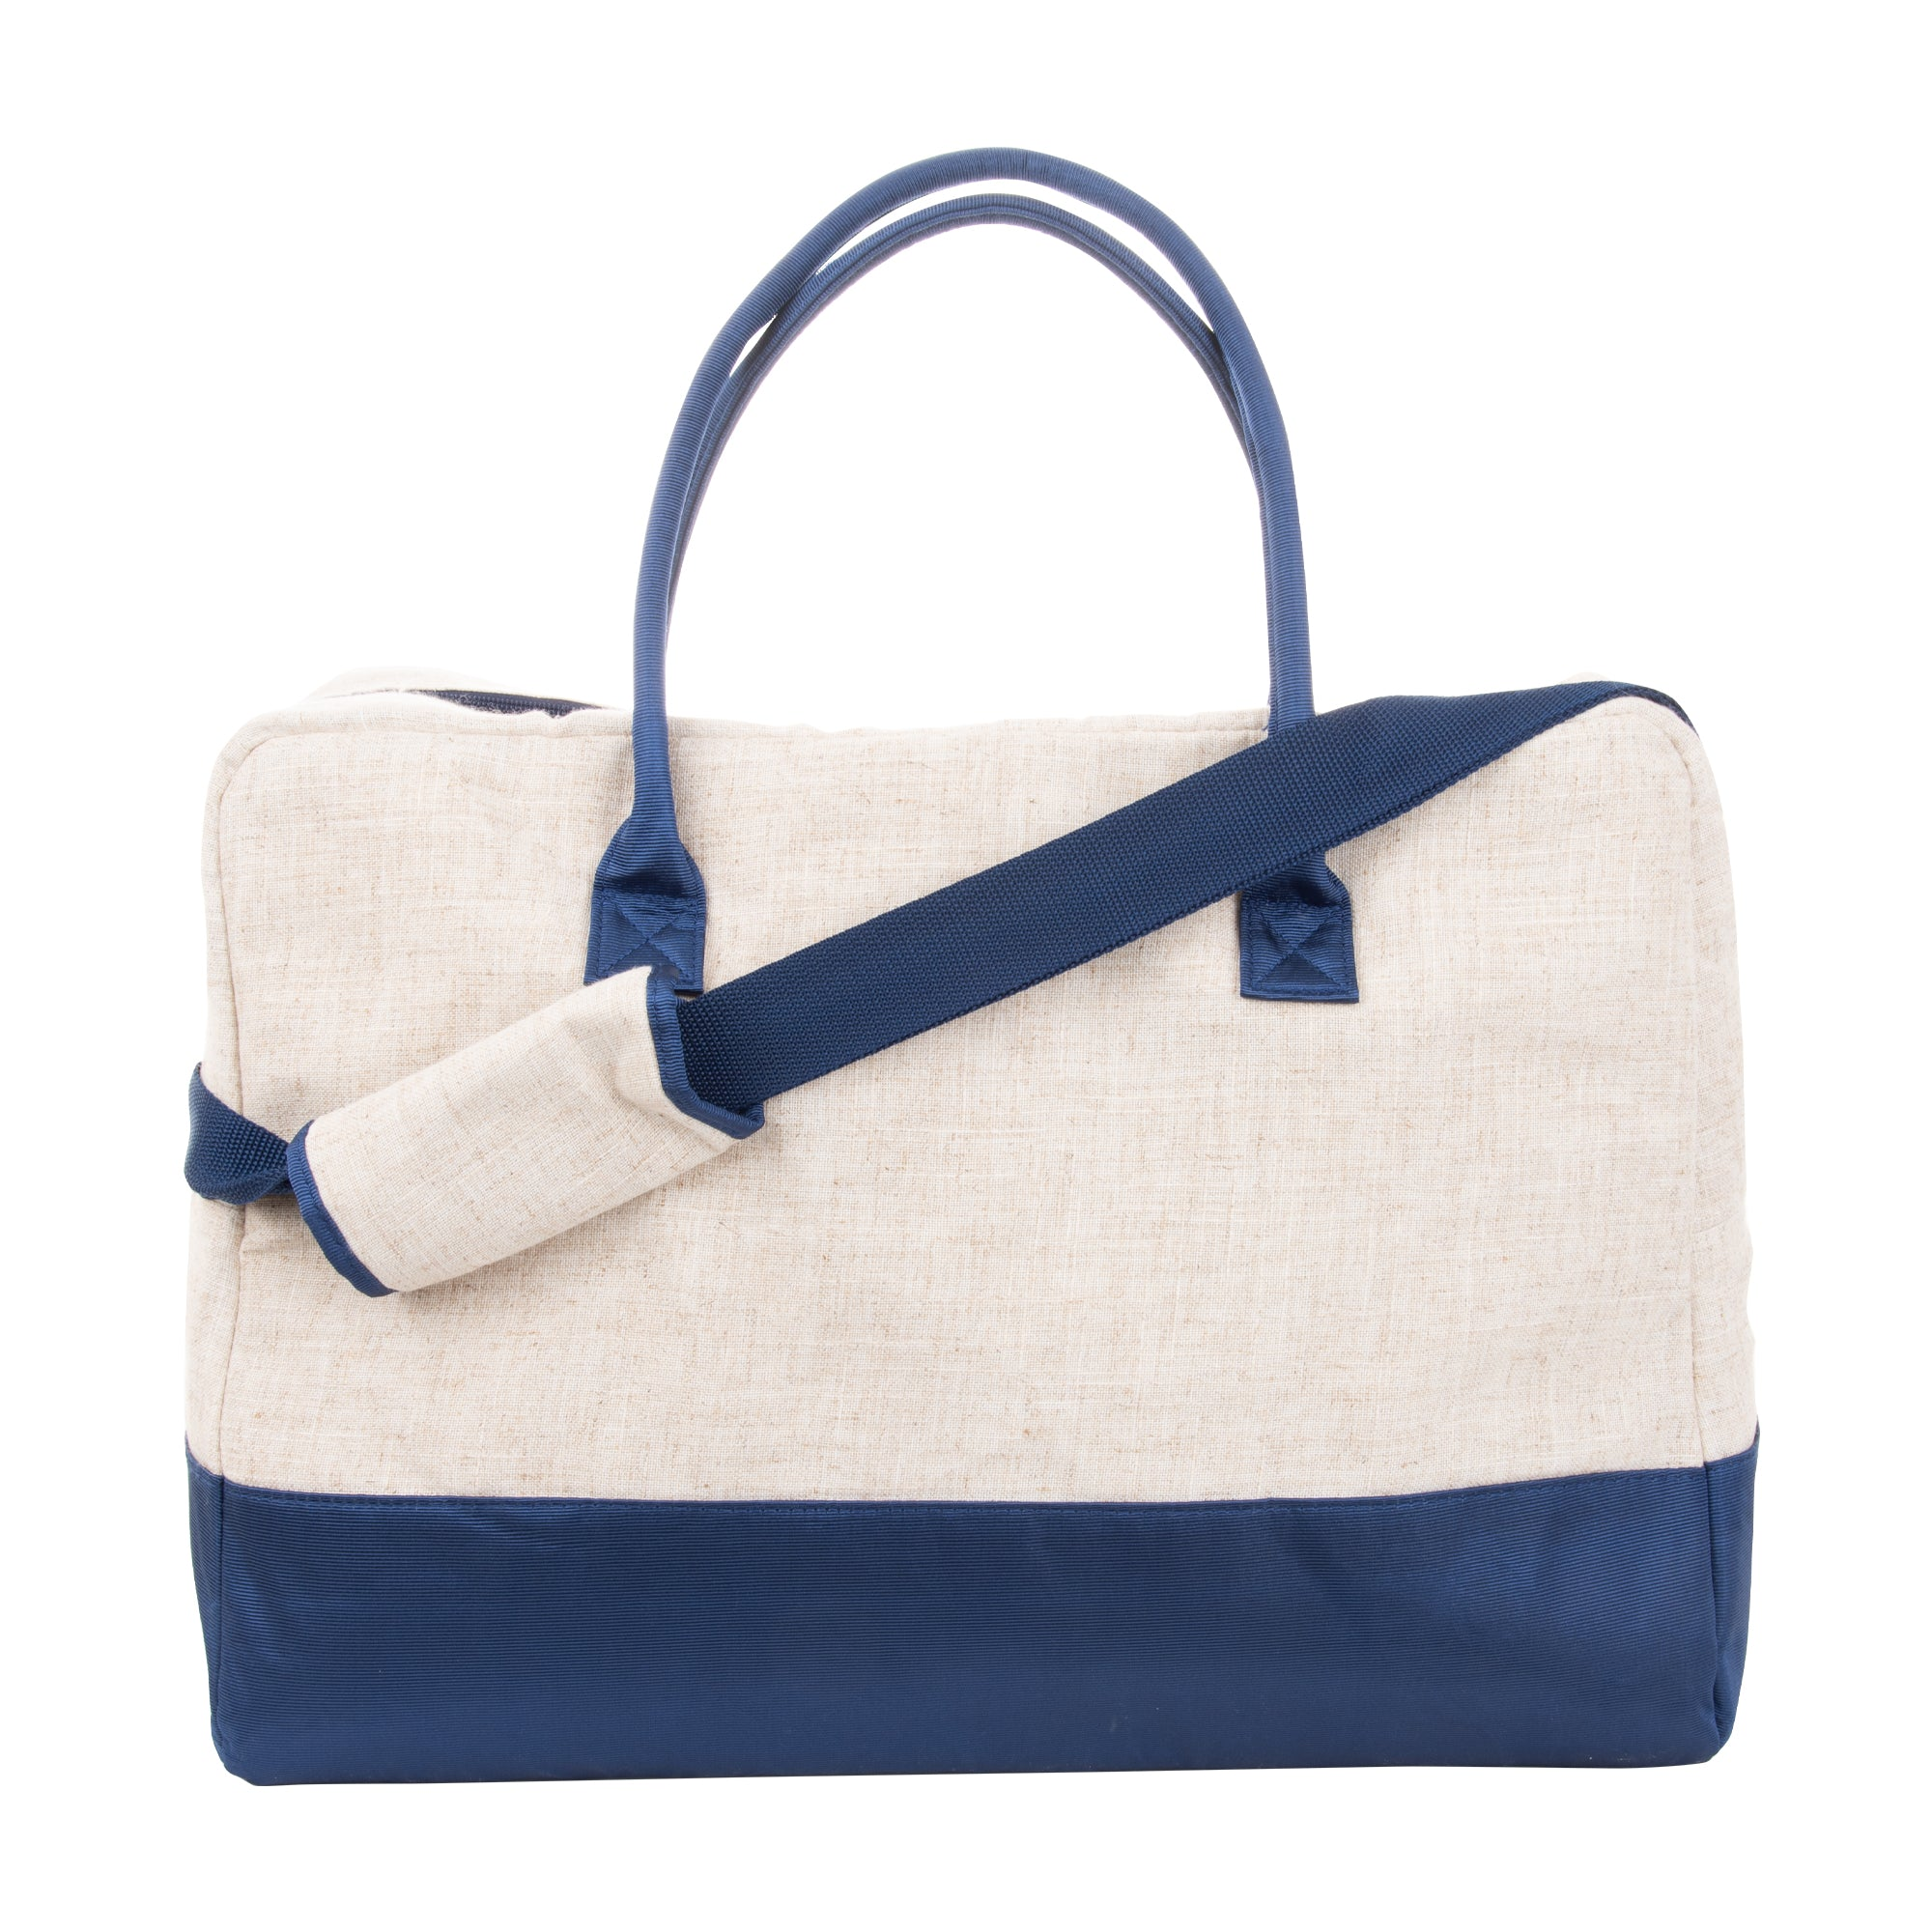 Mainstreet Collection Linen Duffle Bag with Shoulder Strap Black